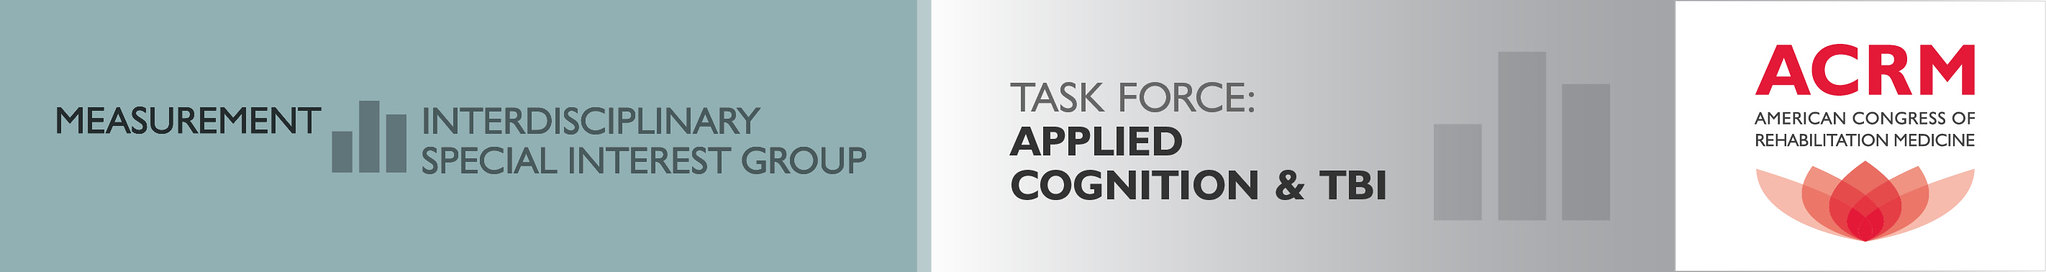 ACRM Measurement ISIG Applied Cognition & TBI Task Force banner